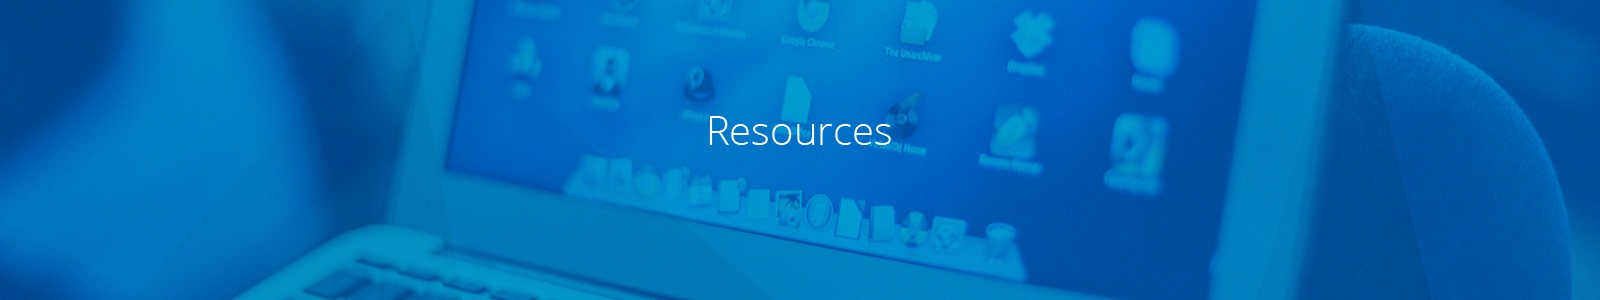 ResourcesBanner